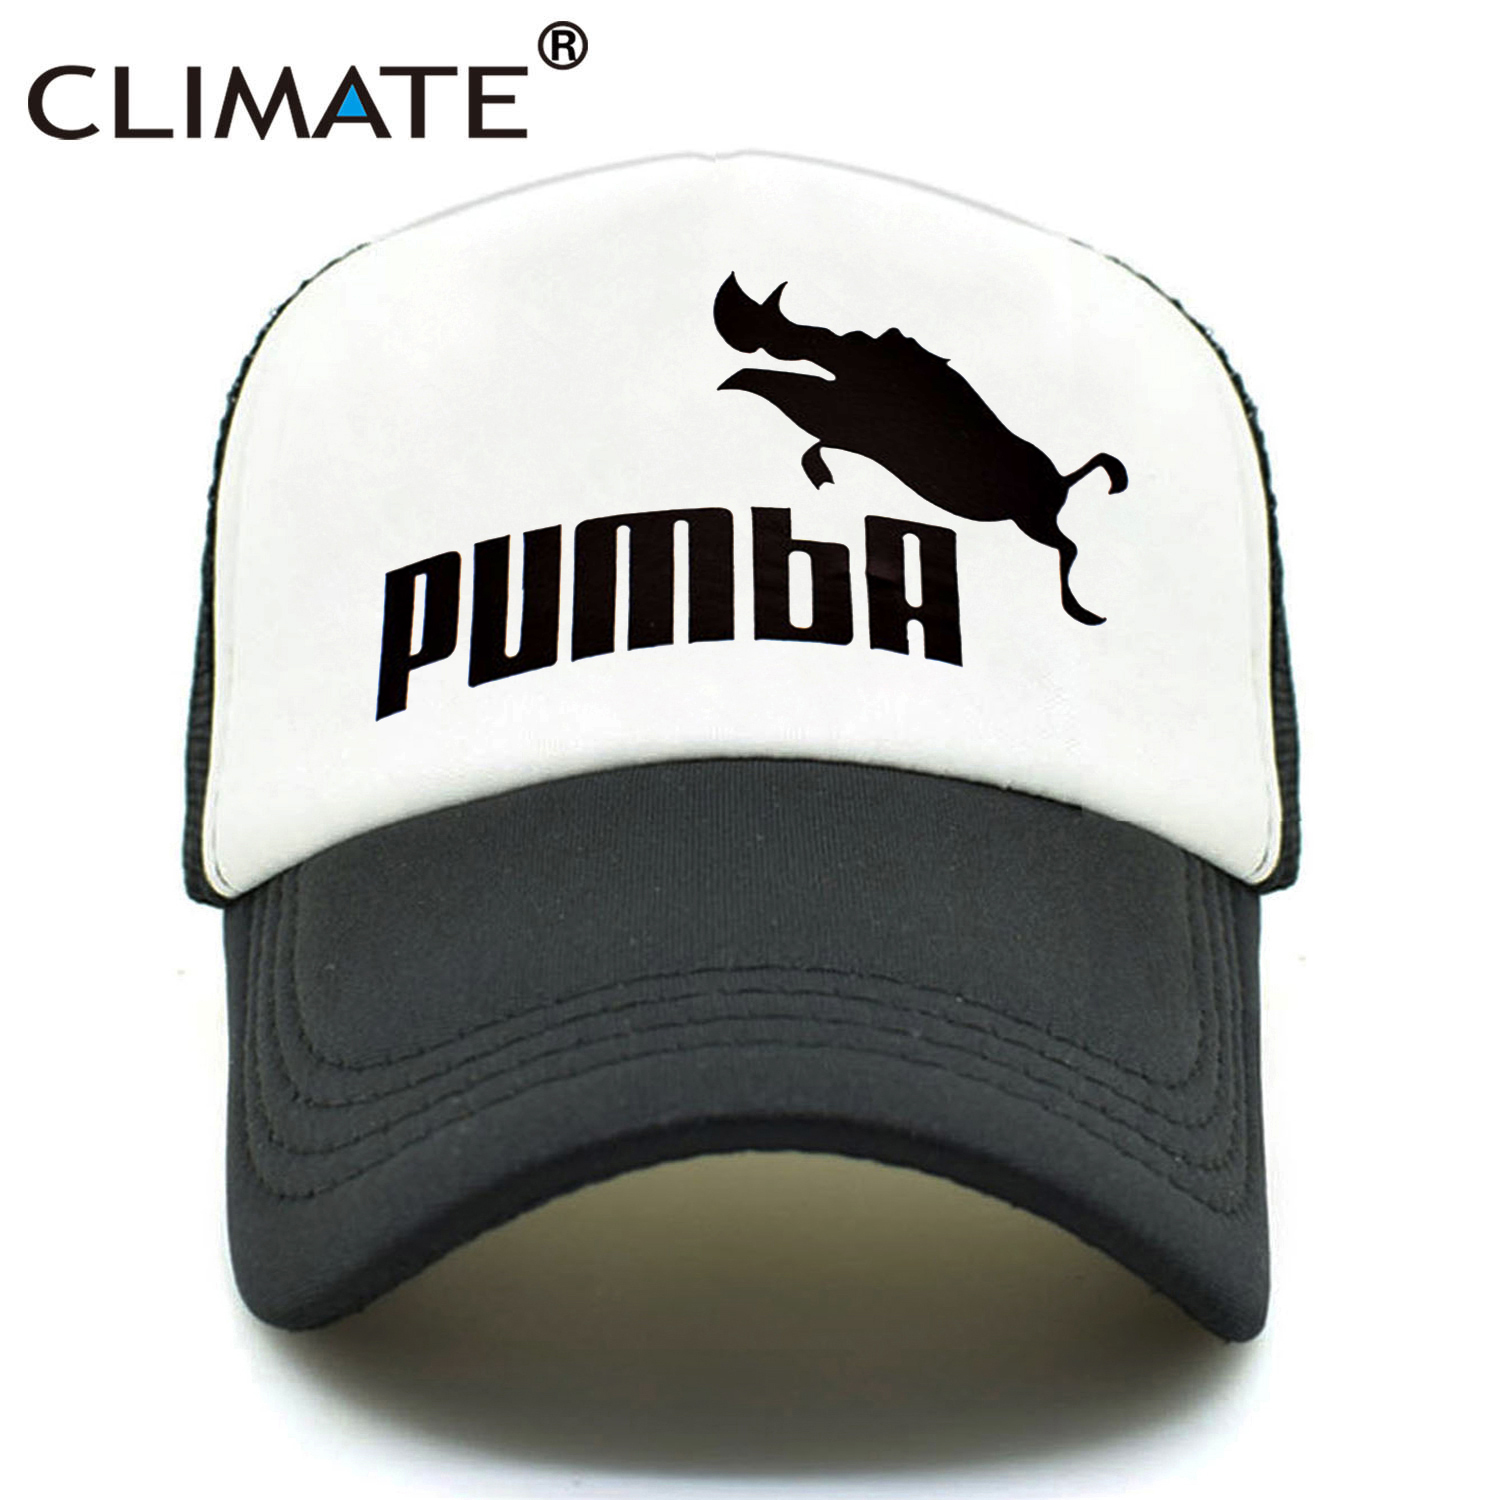 CLIMATE Men Women New Trucker Caps Funny Pumba Cool Summer Caps Hot Cute Homme Pumba Lion King Baseball Mesh Net Trucker Cap Hat